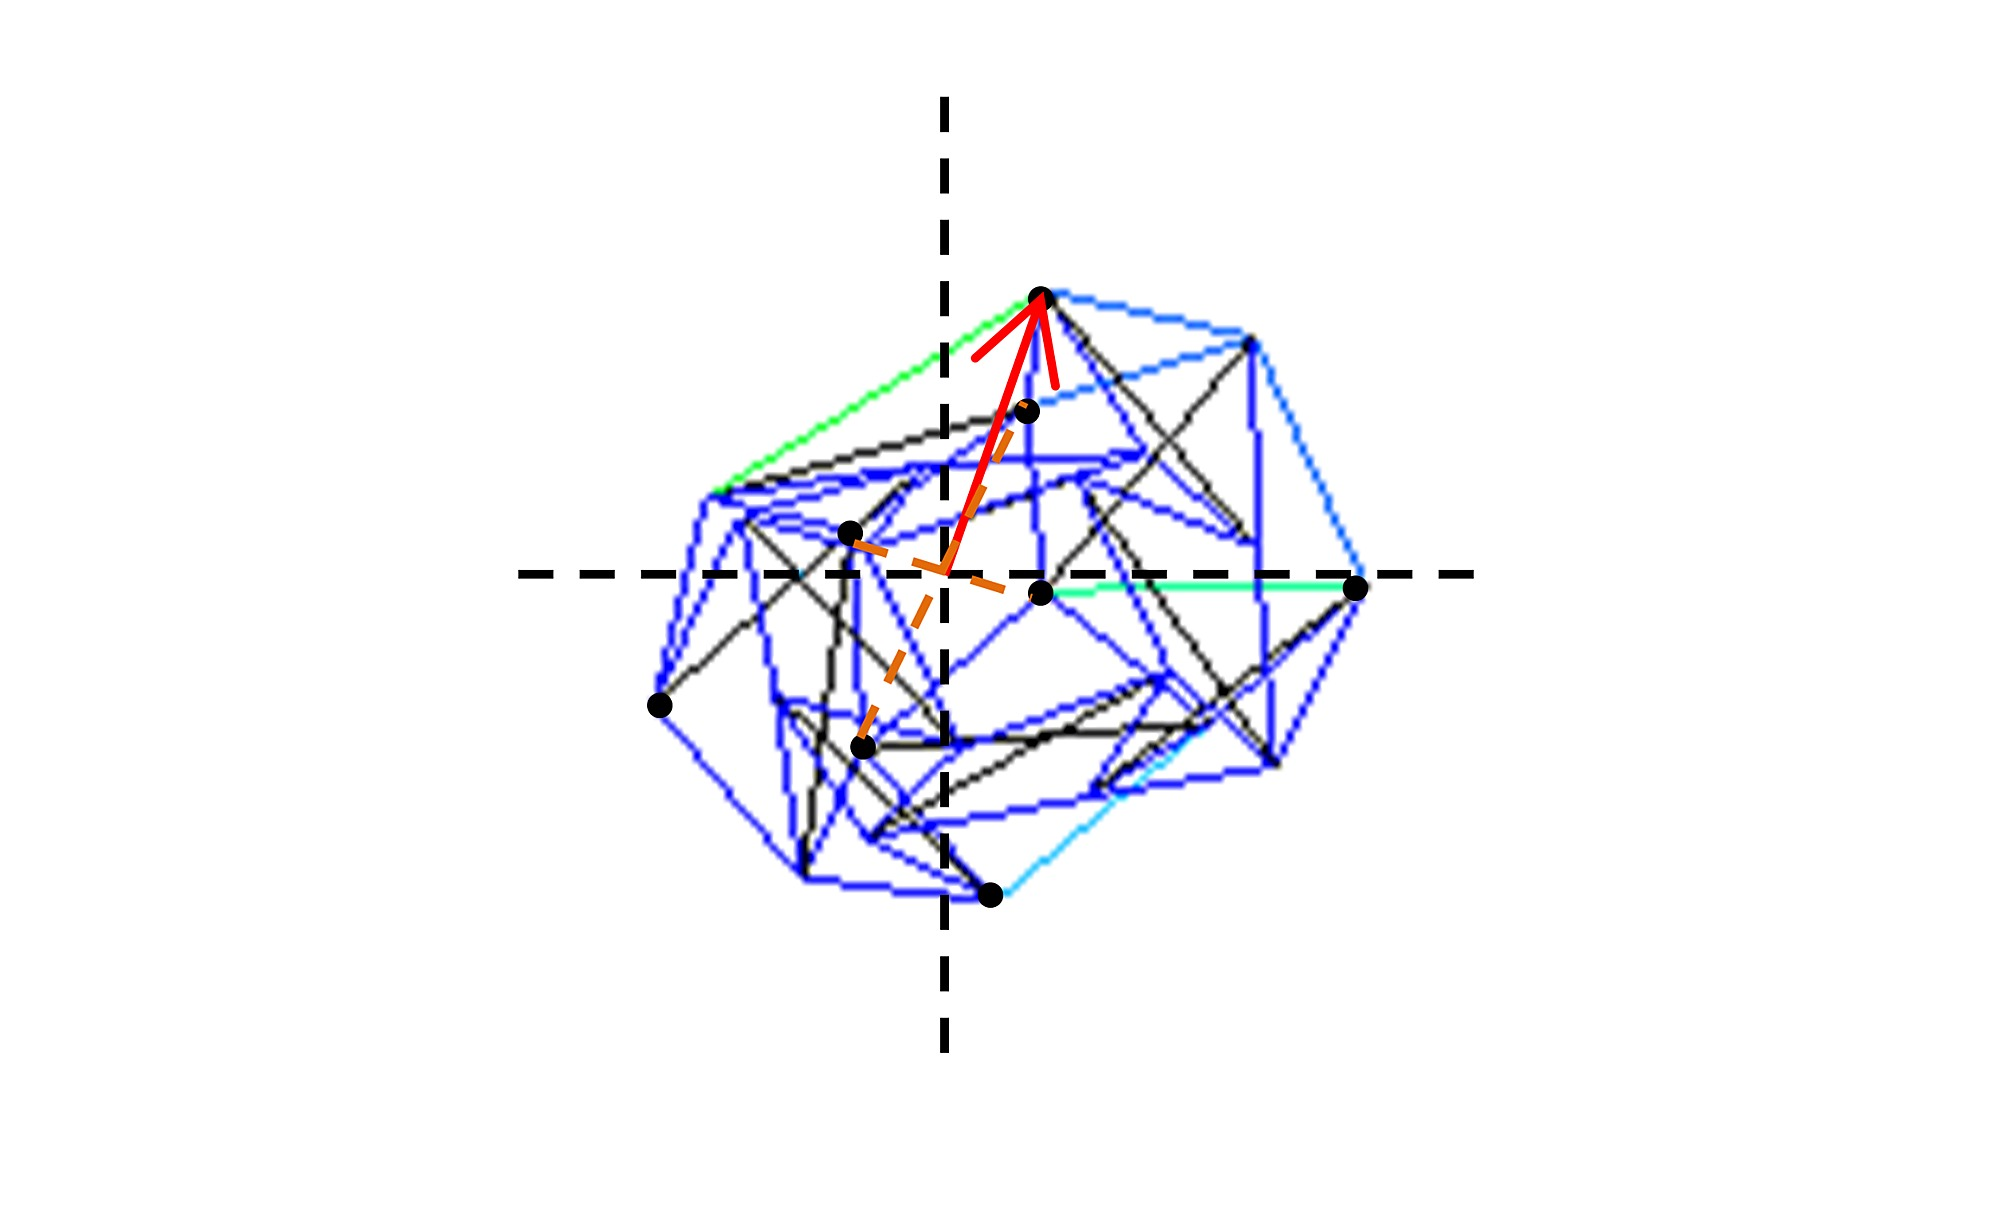 Complexity Of The Tensegrity Structure For Dynamic Energy And Force In Any Case Free Body Diagram 2d Analysis Is Shown Figure S1